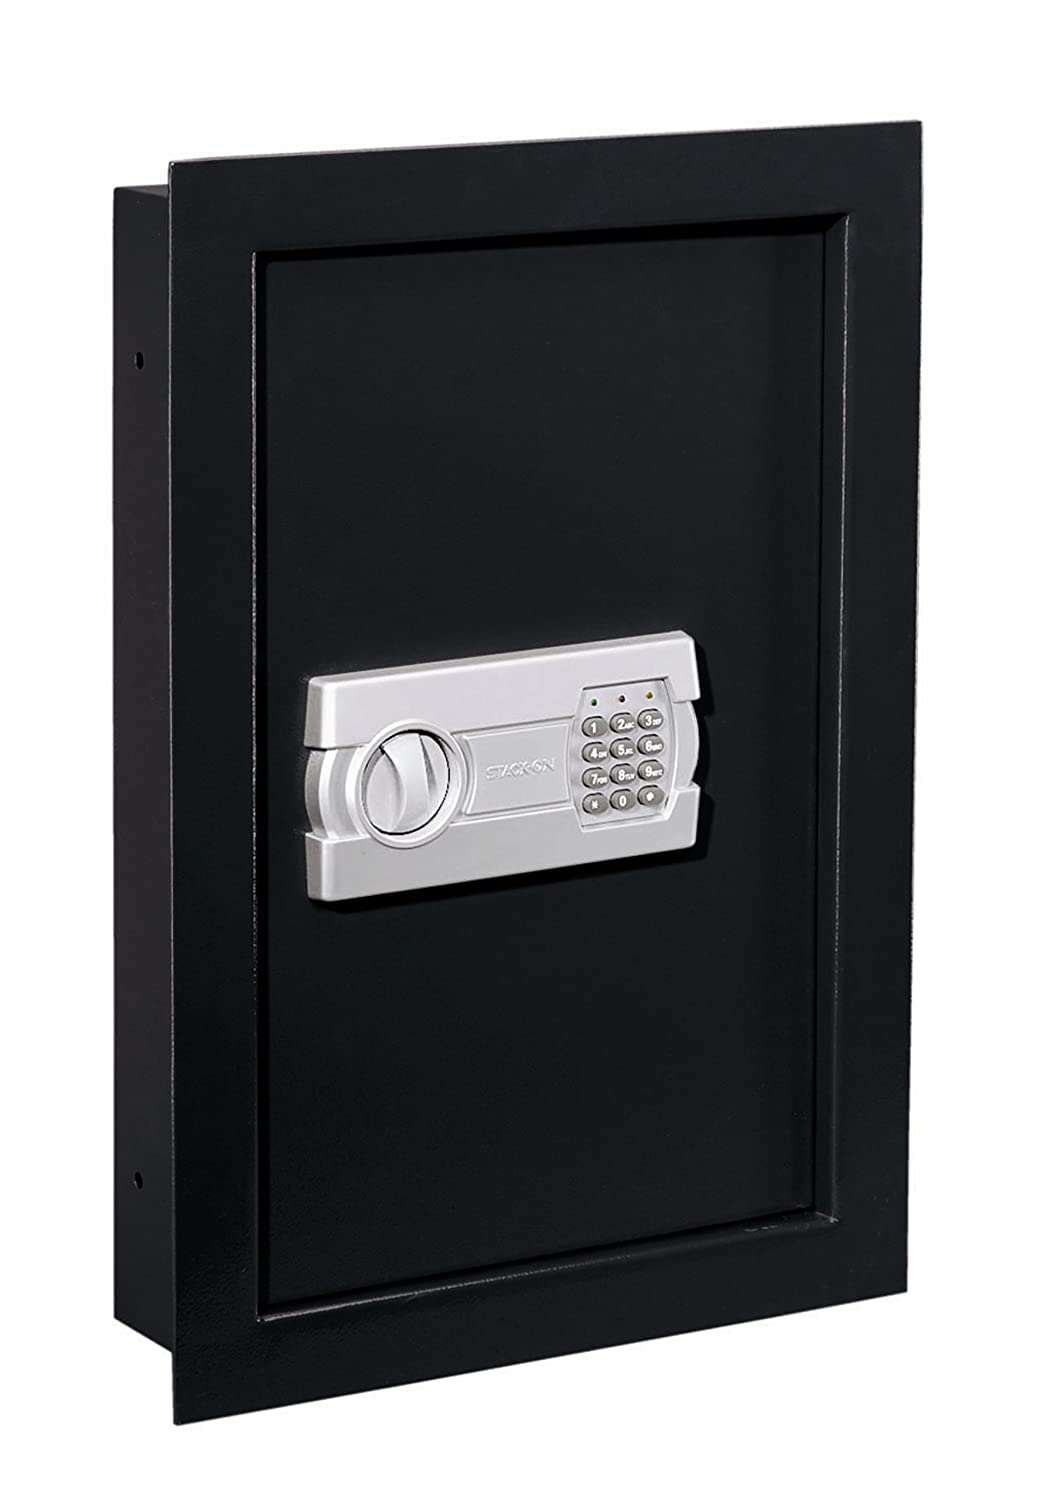 Amazoncom StackOn PWS1522 Wall Safe with Electronic Lock Home